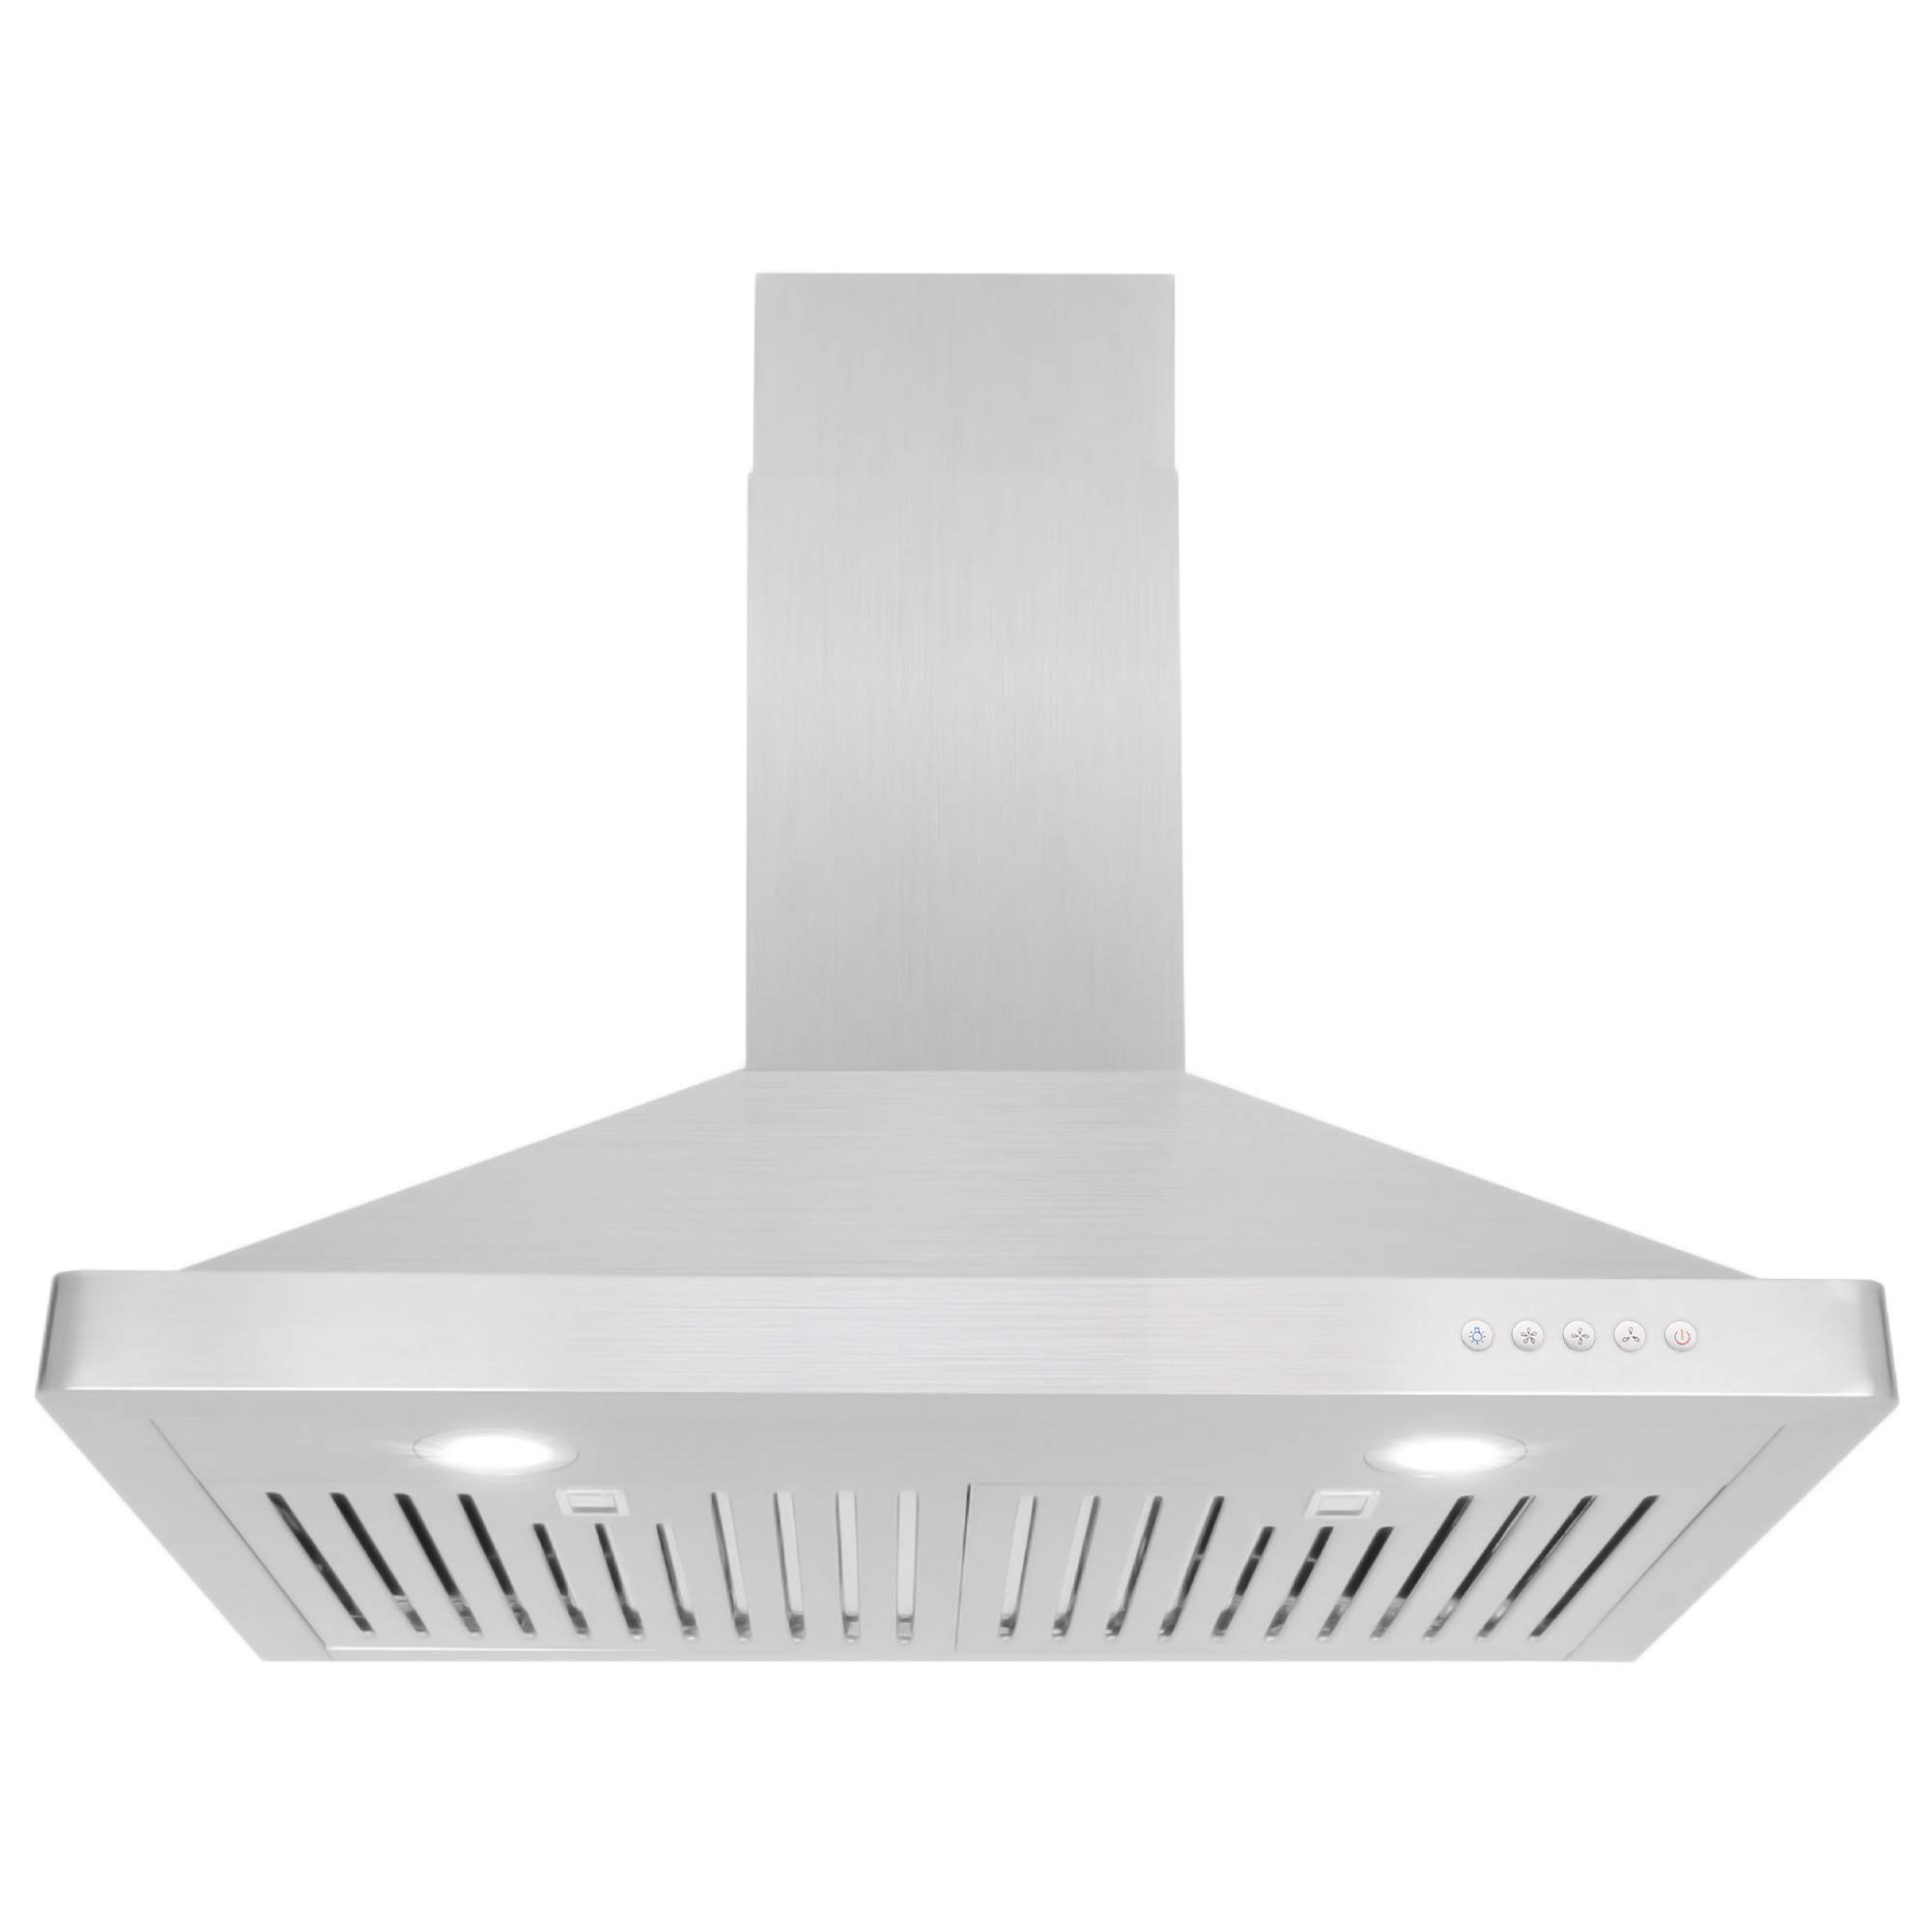 Cosmo 63175 30-in Wall-Mount Range Hood 760-CFM Ductless Convertible Duct Kitchen Chimney-Style Over Stove Vent LED Light, 3 Speed Exhaust Fan, Permanent Filter, (Stainless Steel) by Cosmo